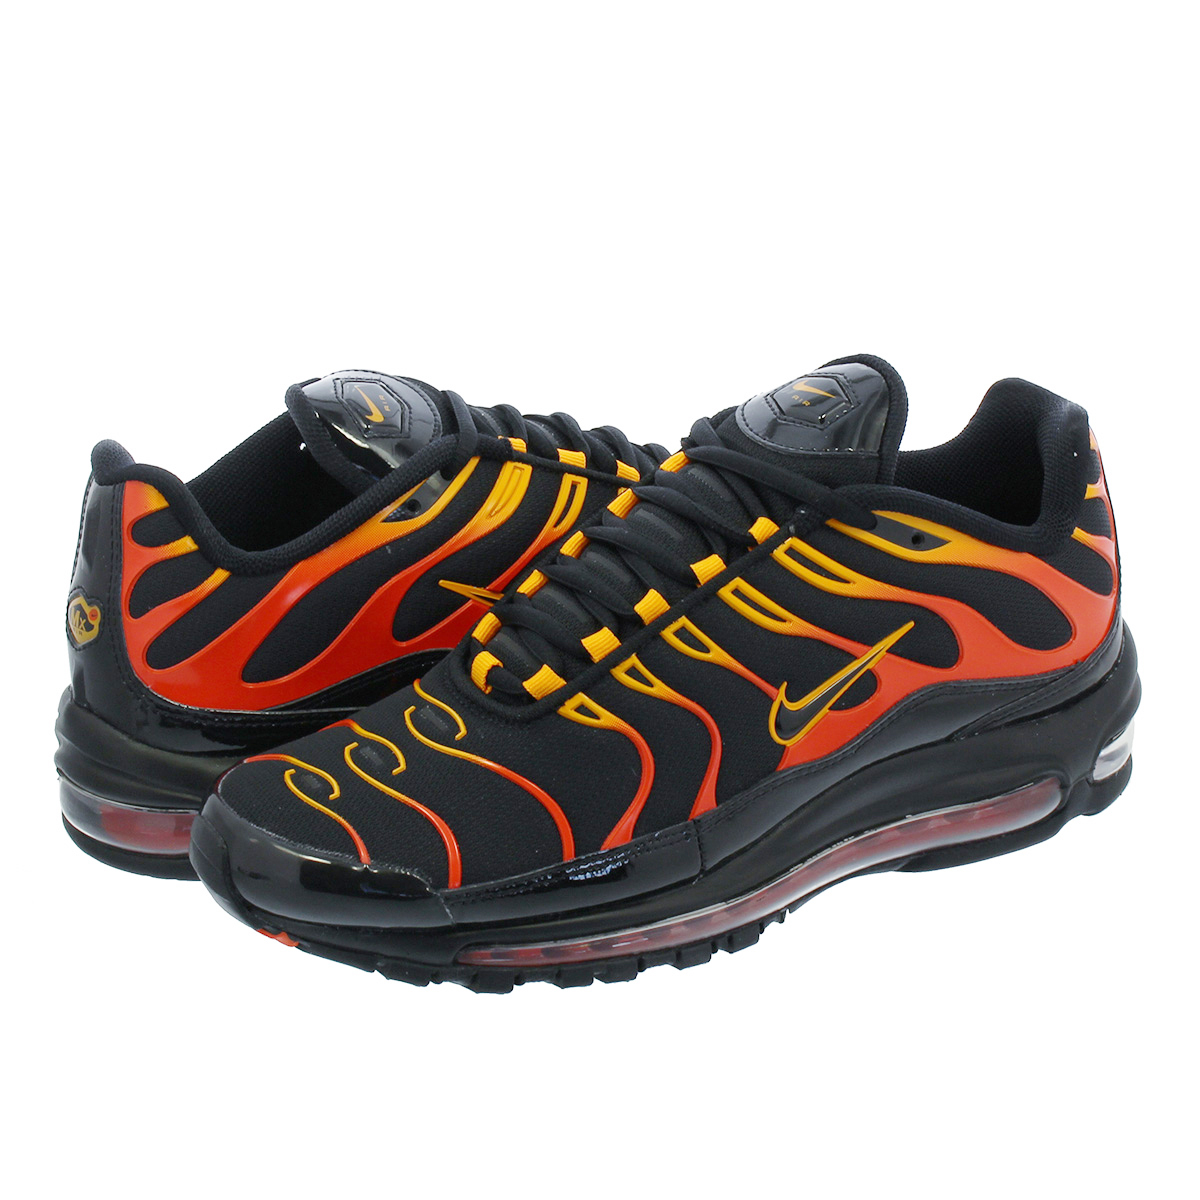 88e73e4dd8 SELECT SHOP LOWTEX: NIKE AIR MAX 97 PLUS Kie Ney AMAX 97 plus BLACK/ENGINE  1 /SHOCK ORANGE ah8144-002 | Rakuten Global Market